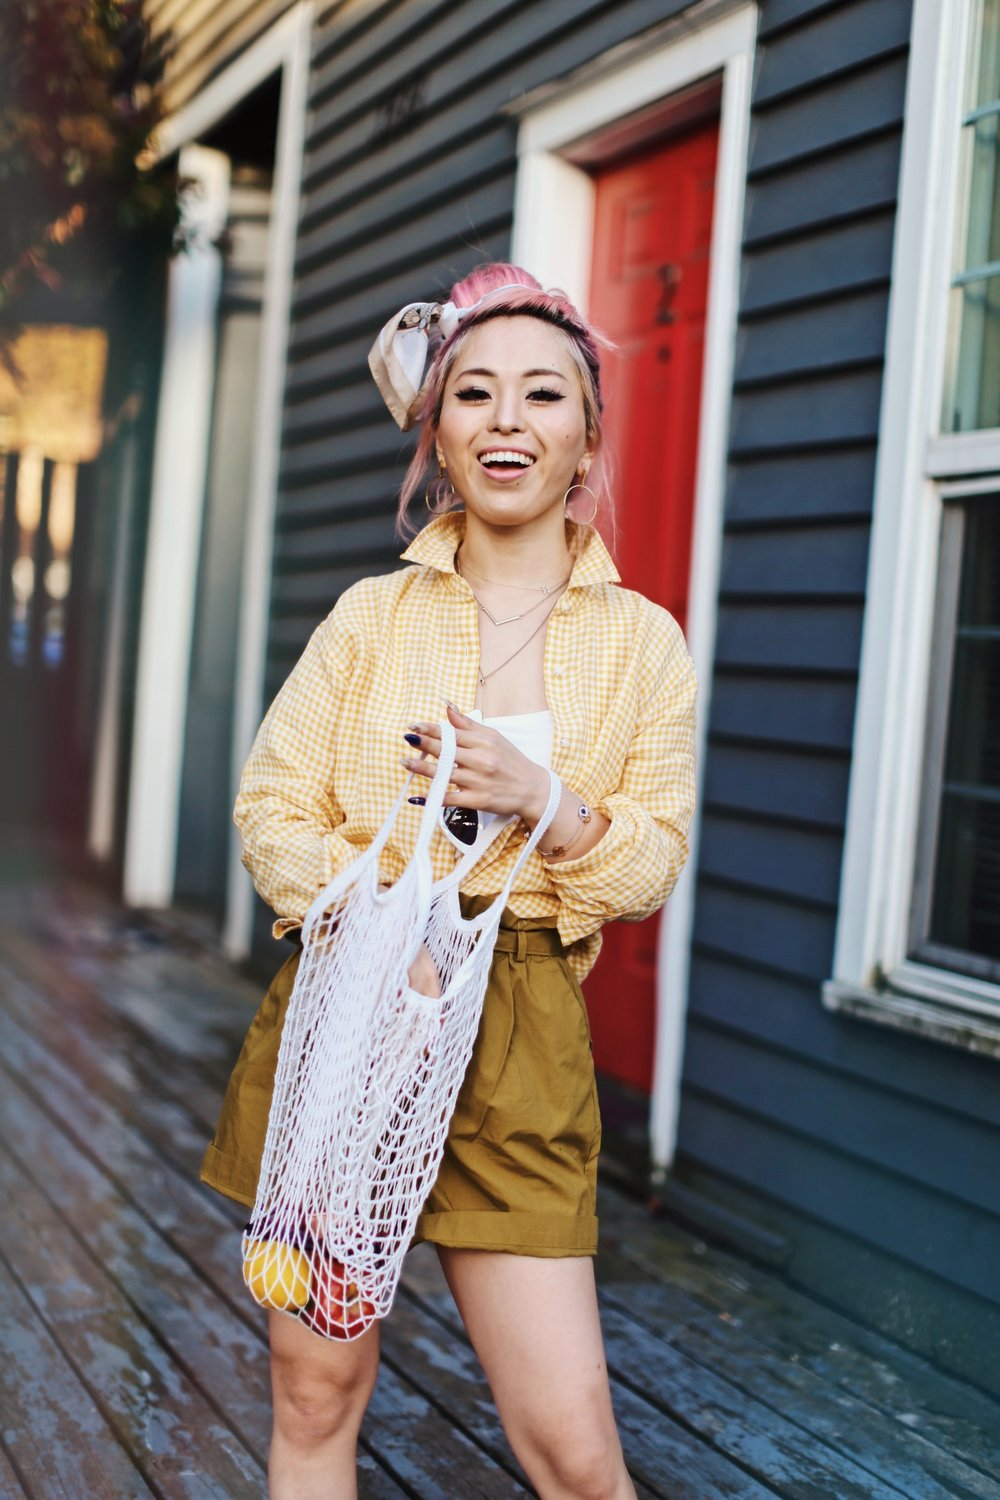 Uniqlo yellow Linen gingham shirt-Uniqlo olive paperbag shorts-Uniqlo Airism bratop-White Cat eye sunglasses ZERO UV- Pipe + Row White net bag-Vintage scarf bun hairstyle-ALDO Embroidered Nude mules-Aika's Love Closet-seattle fashion style blogger-Japanese-pink hair-smiling-spring fashion 9